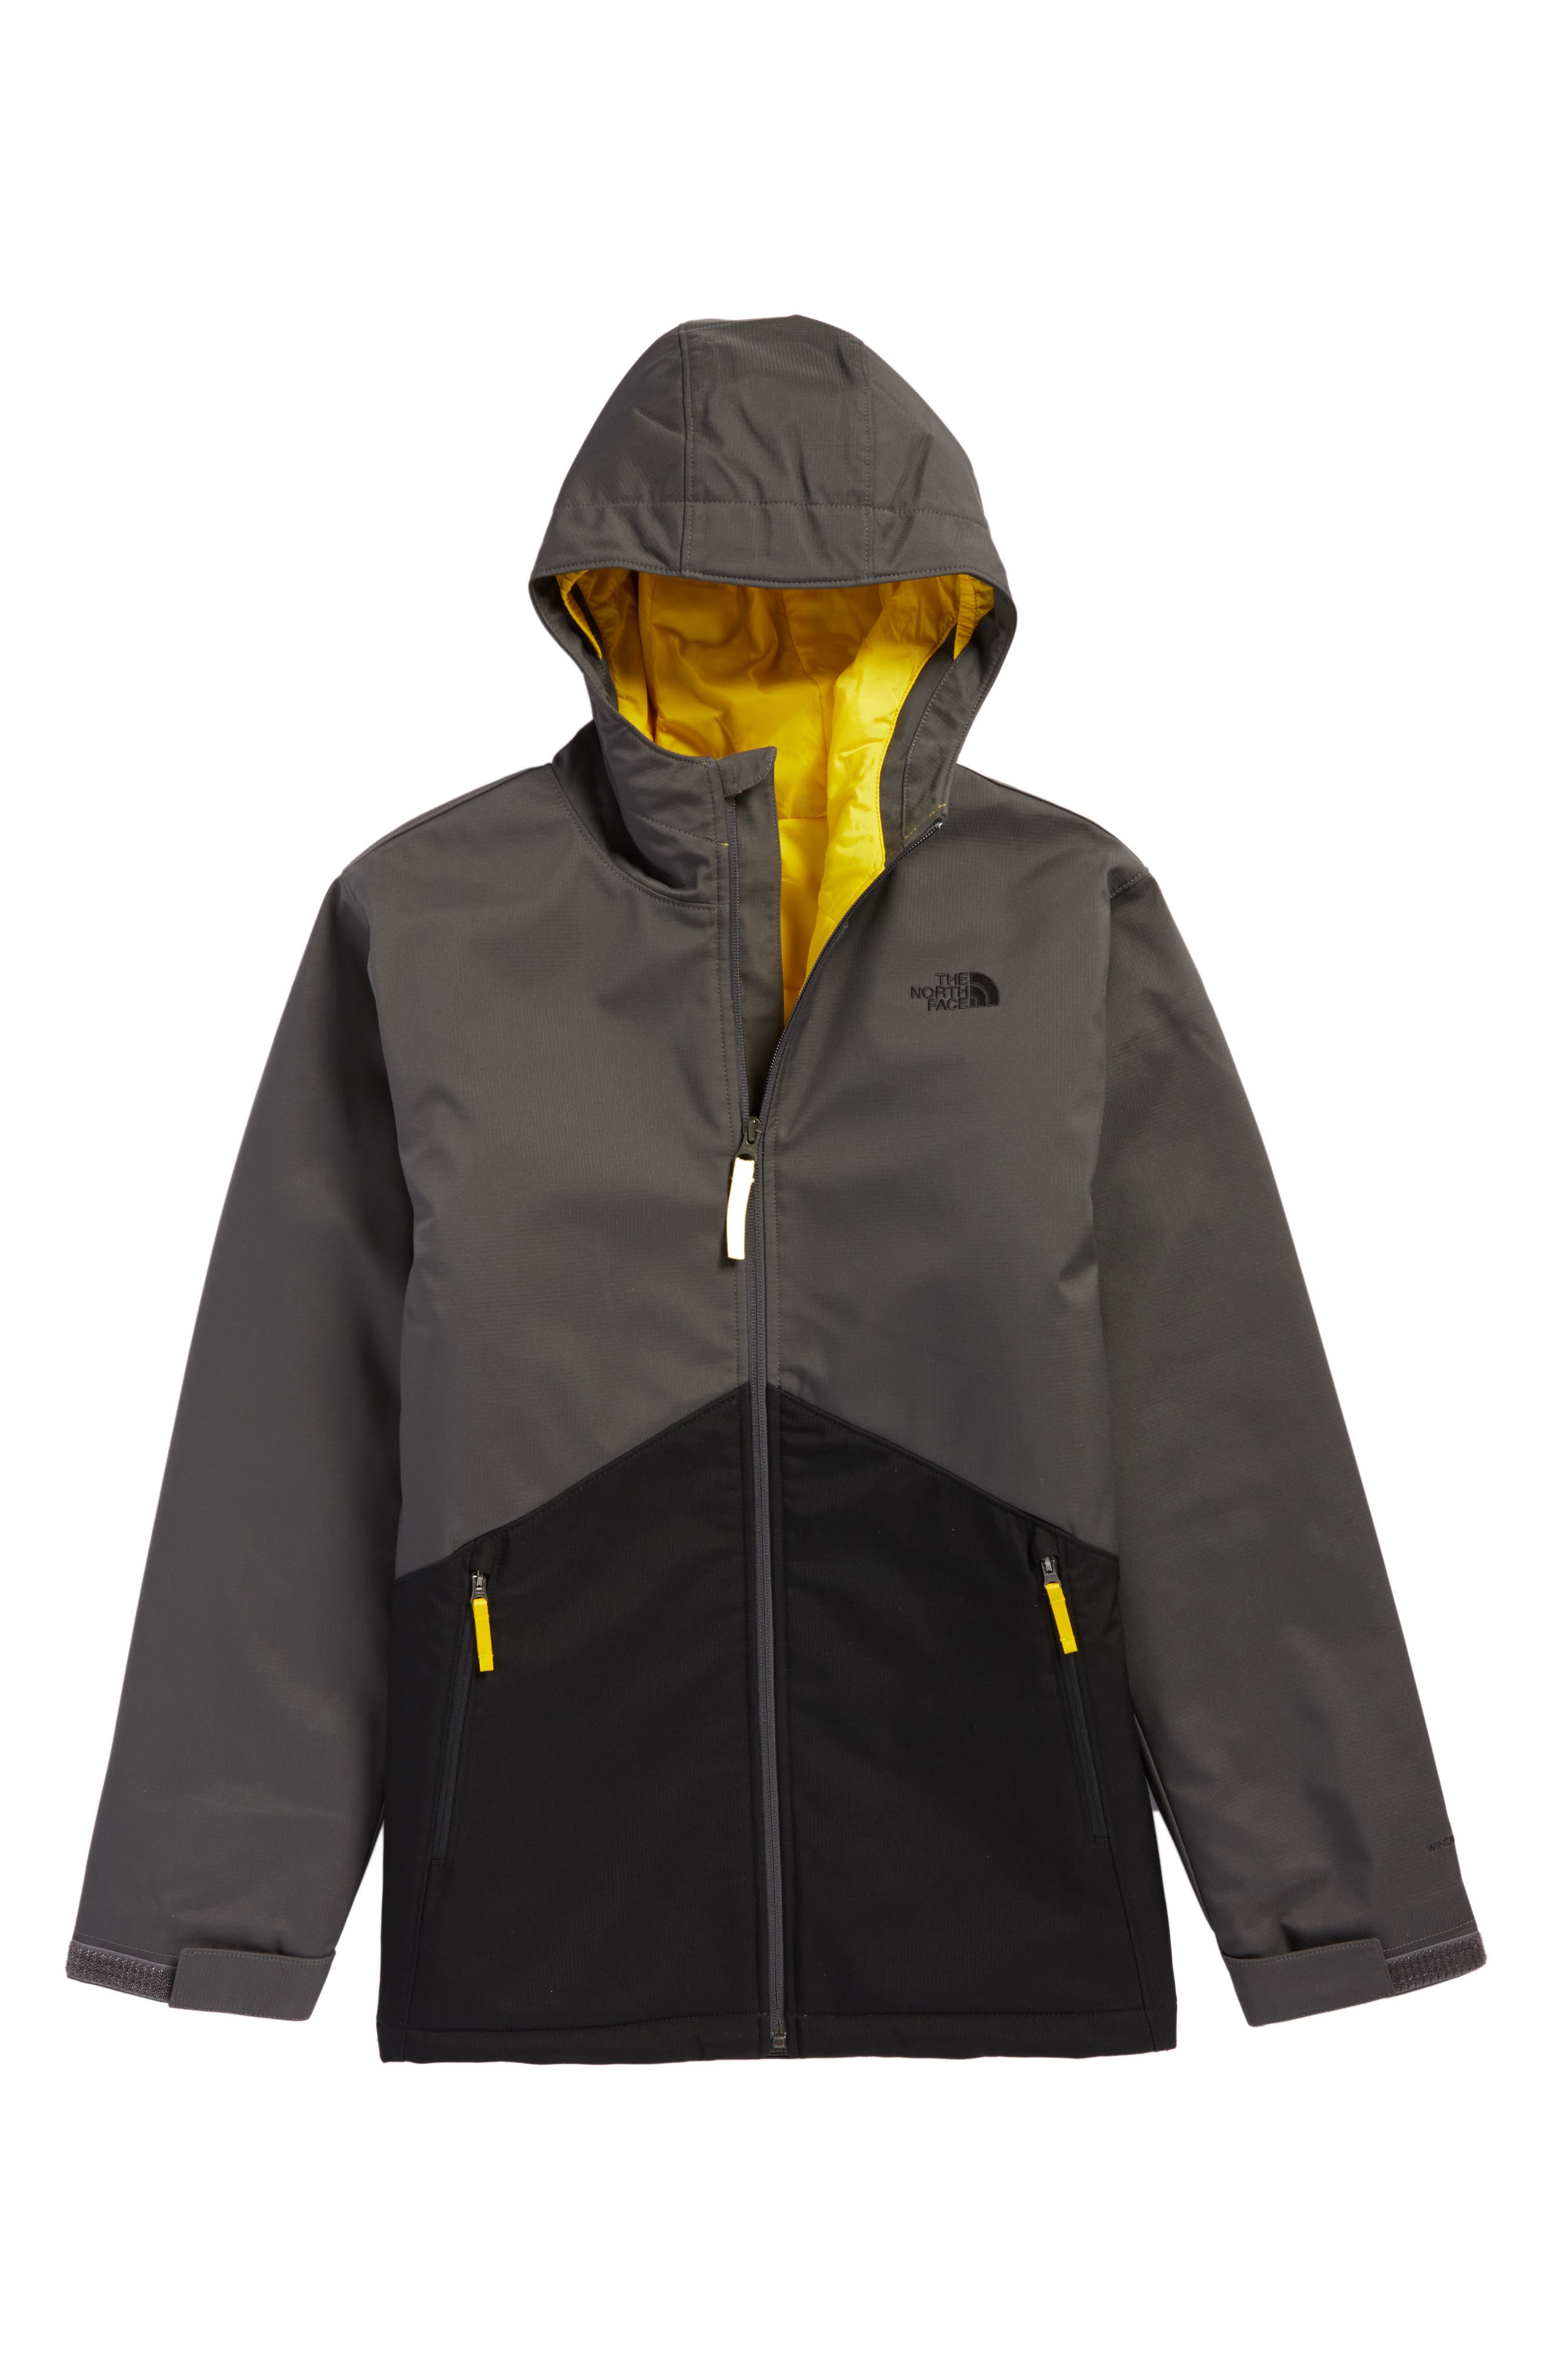 'Apex Elevation' Hooded Jacket,                             Main thumbnail 1, color,                             Graphite Grey/ Canary Yellow